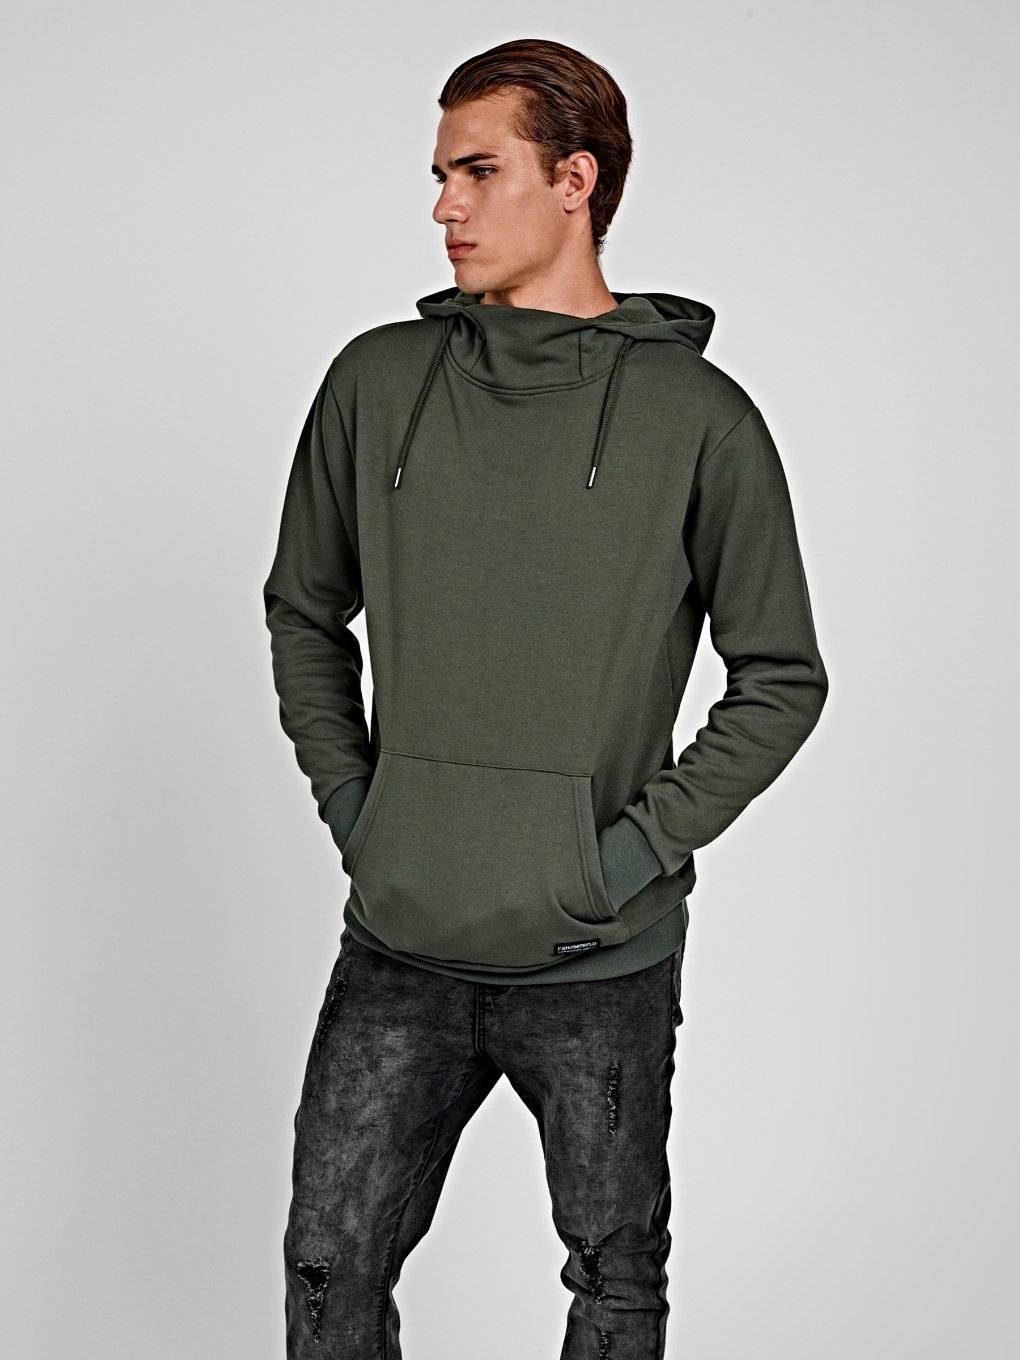 Hoodie with stand-up collar